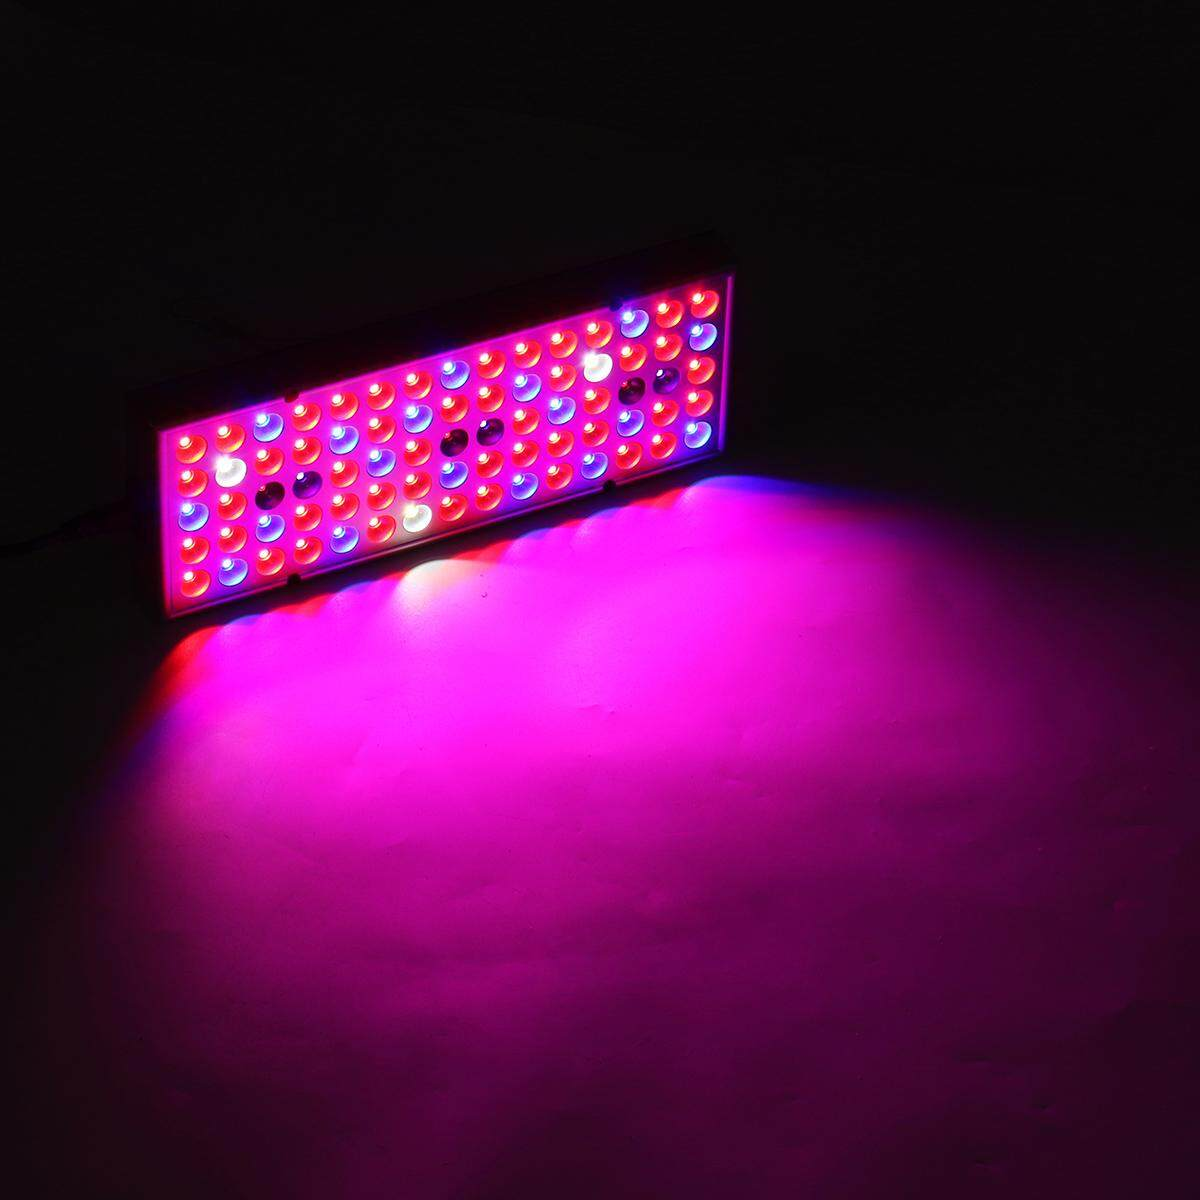 25W 75LED Plant Grow Light Lamp Full Spectrum For Flower Seeds Greenhouse Indoor